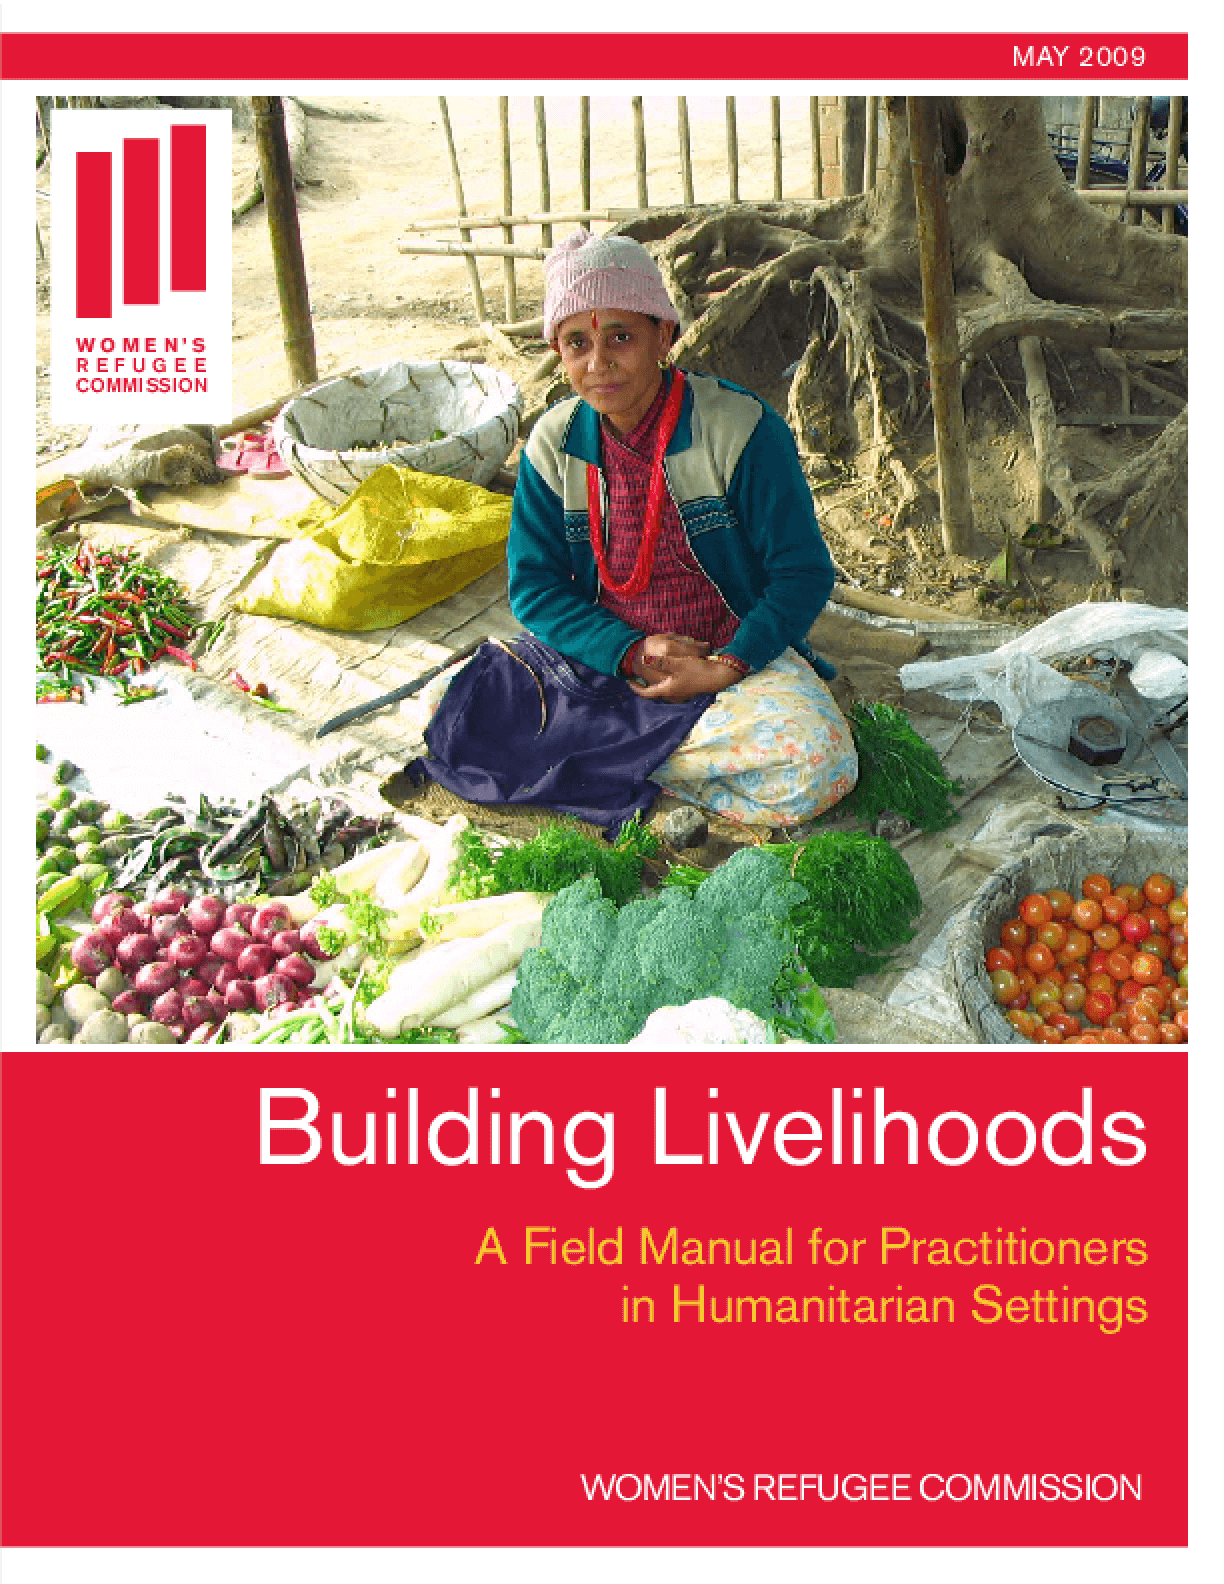 Building Livelihoods: A Field Manual for Practitioners in Humanitarian Settings